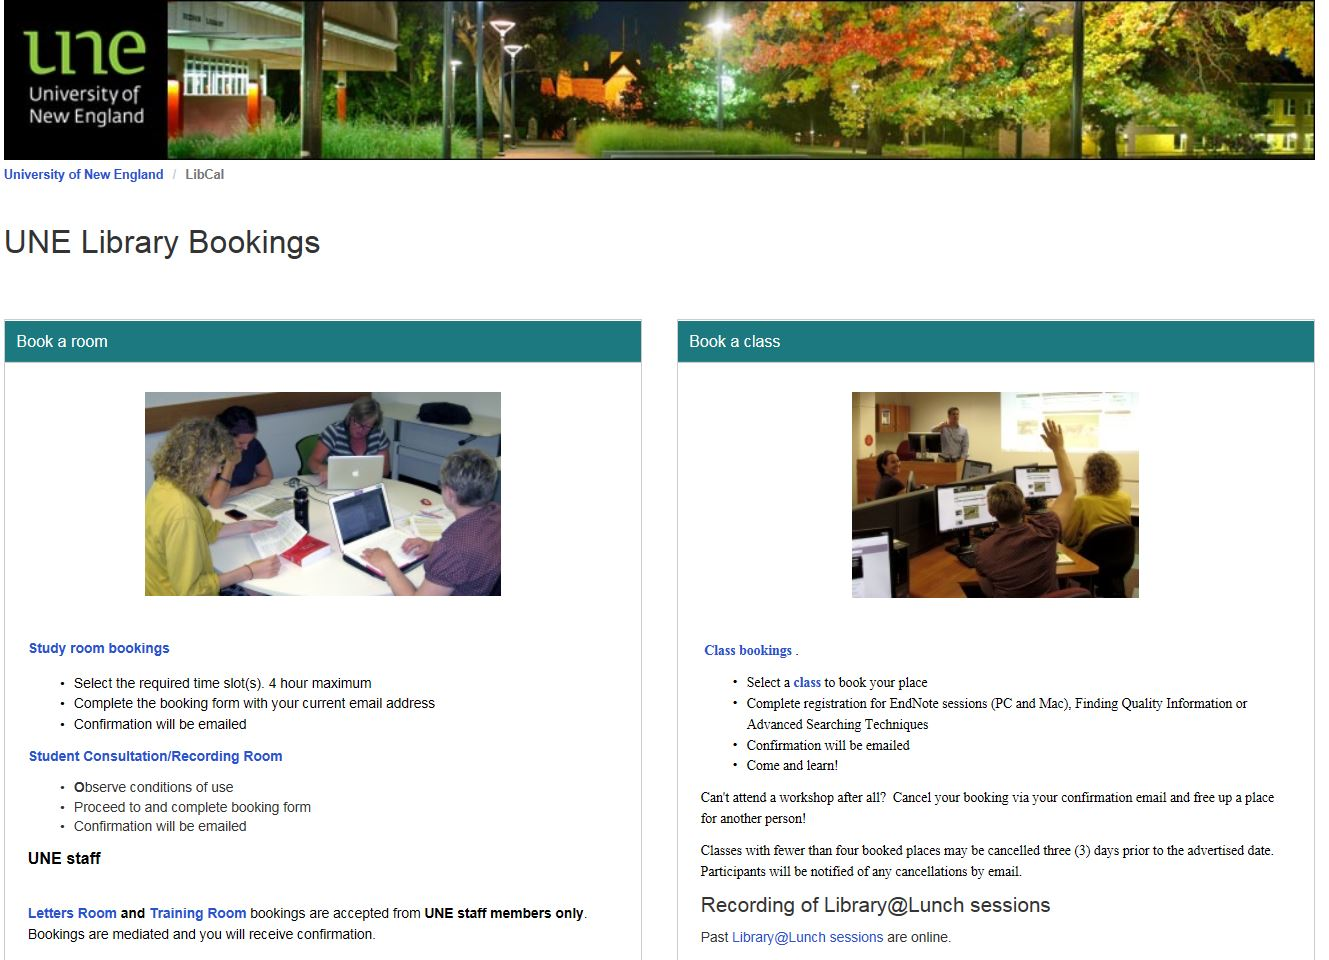 Screenshot of UNE Library Bookings page